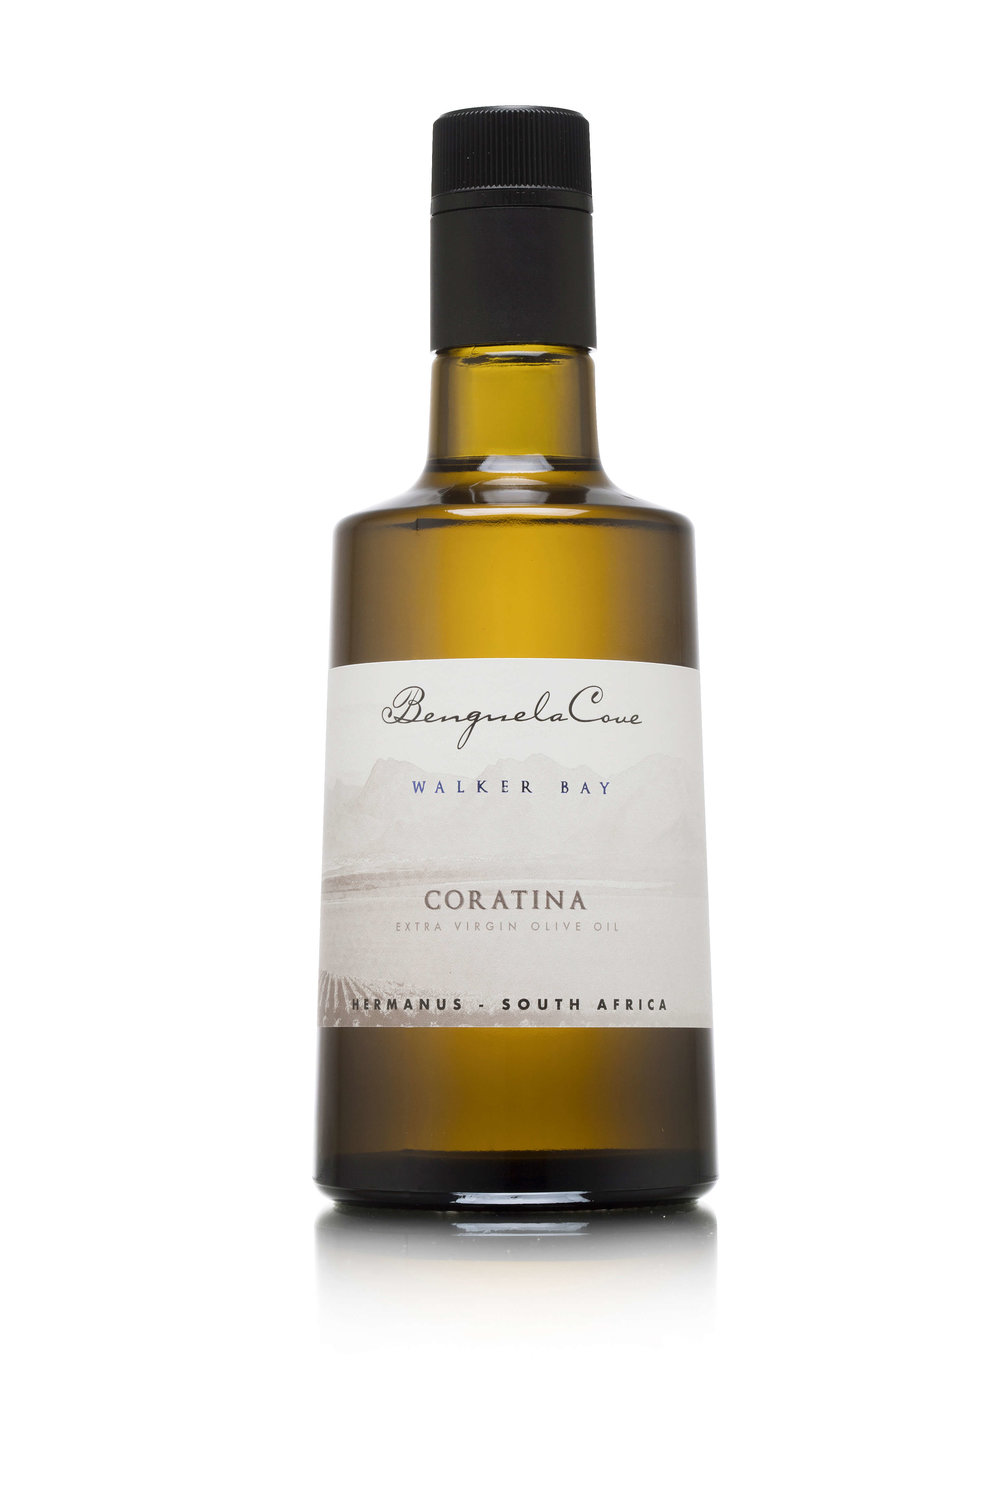 Coratina - Character: Balanced, peppery after-taste, astringent yet pleasant herbaceous edge.